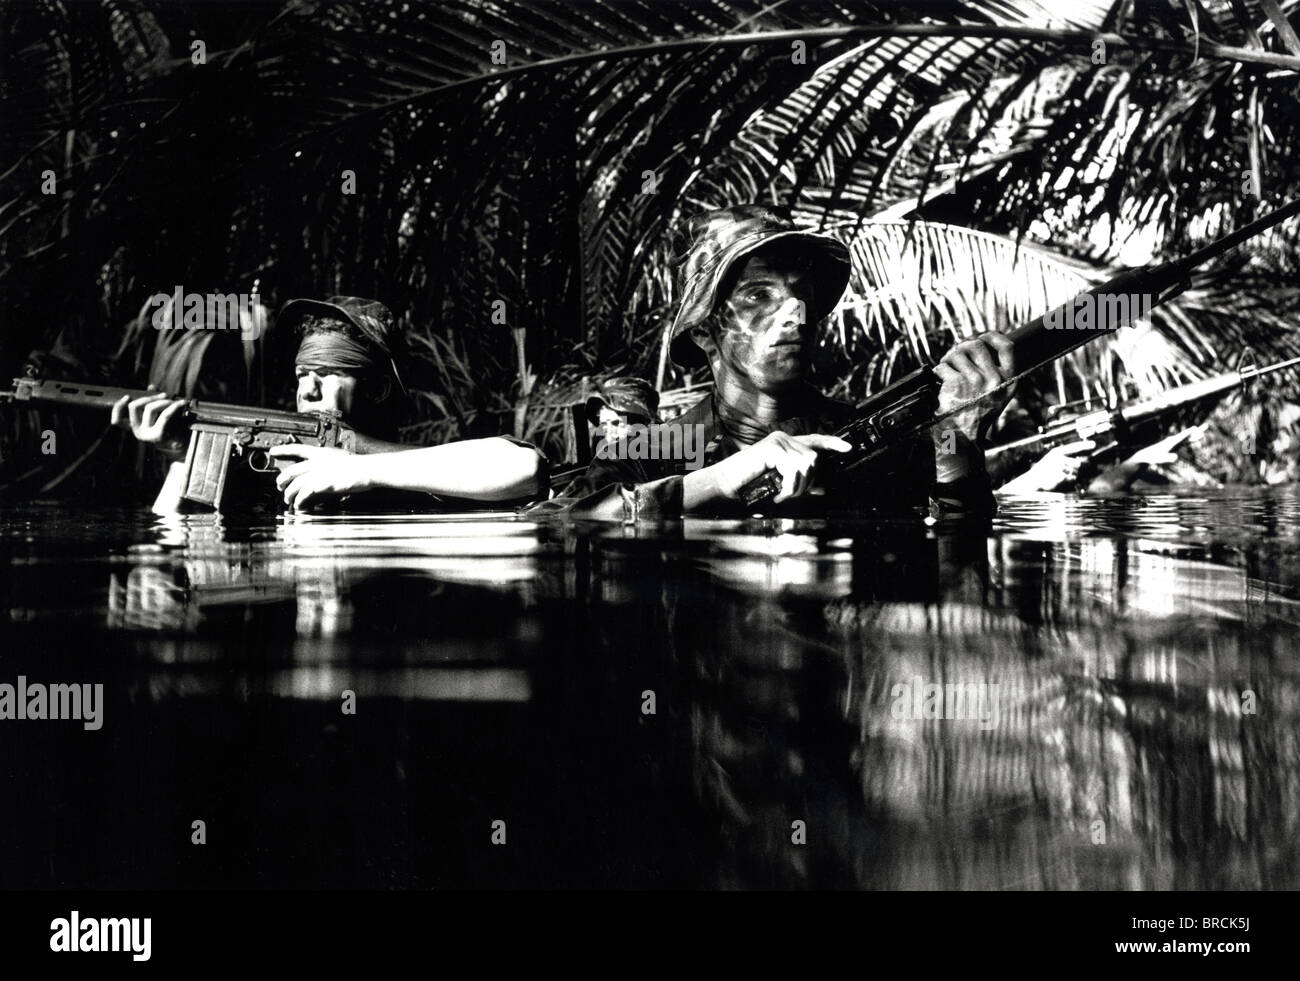 Black and white image of two soldiers hiding in water - Stock Image